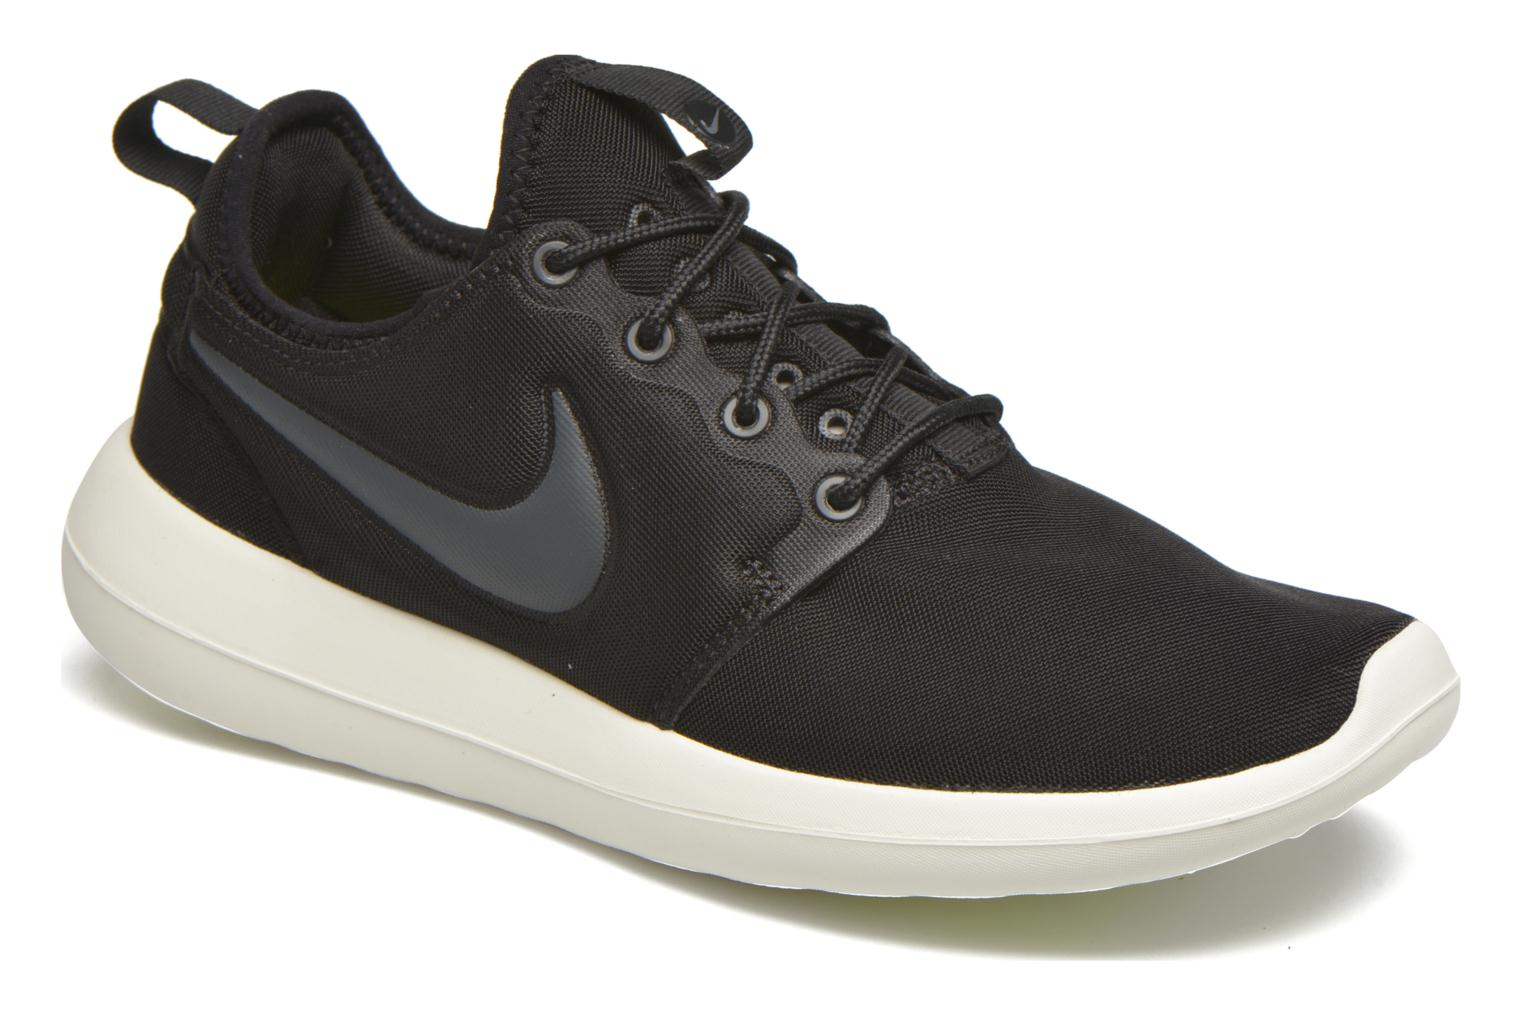 W Nike Roshe Two Black/Anthracite-Sail-Volt